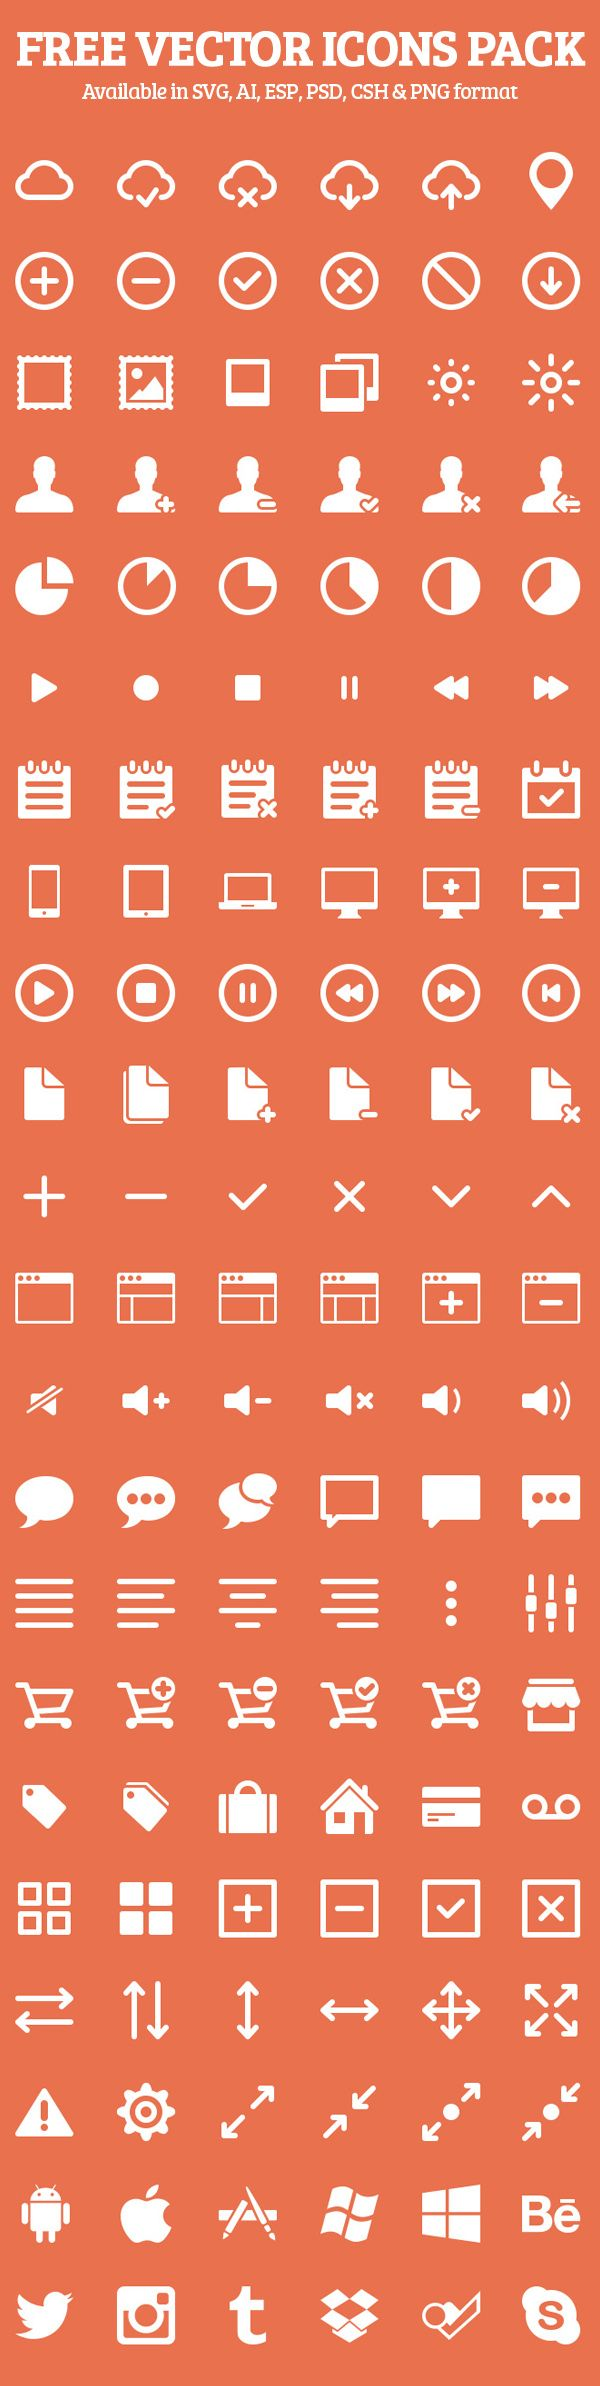 Free Vector Icons Pack Preview 1  #vectoricons #freeicons #psdicons